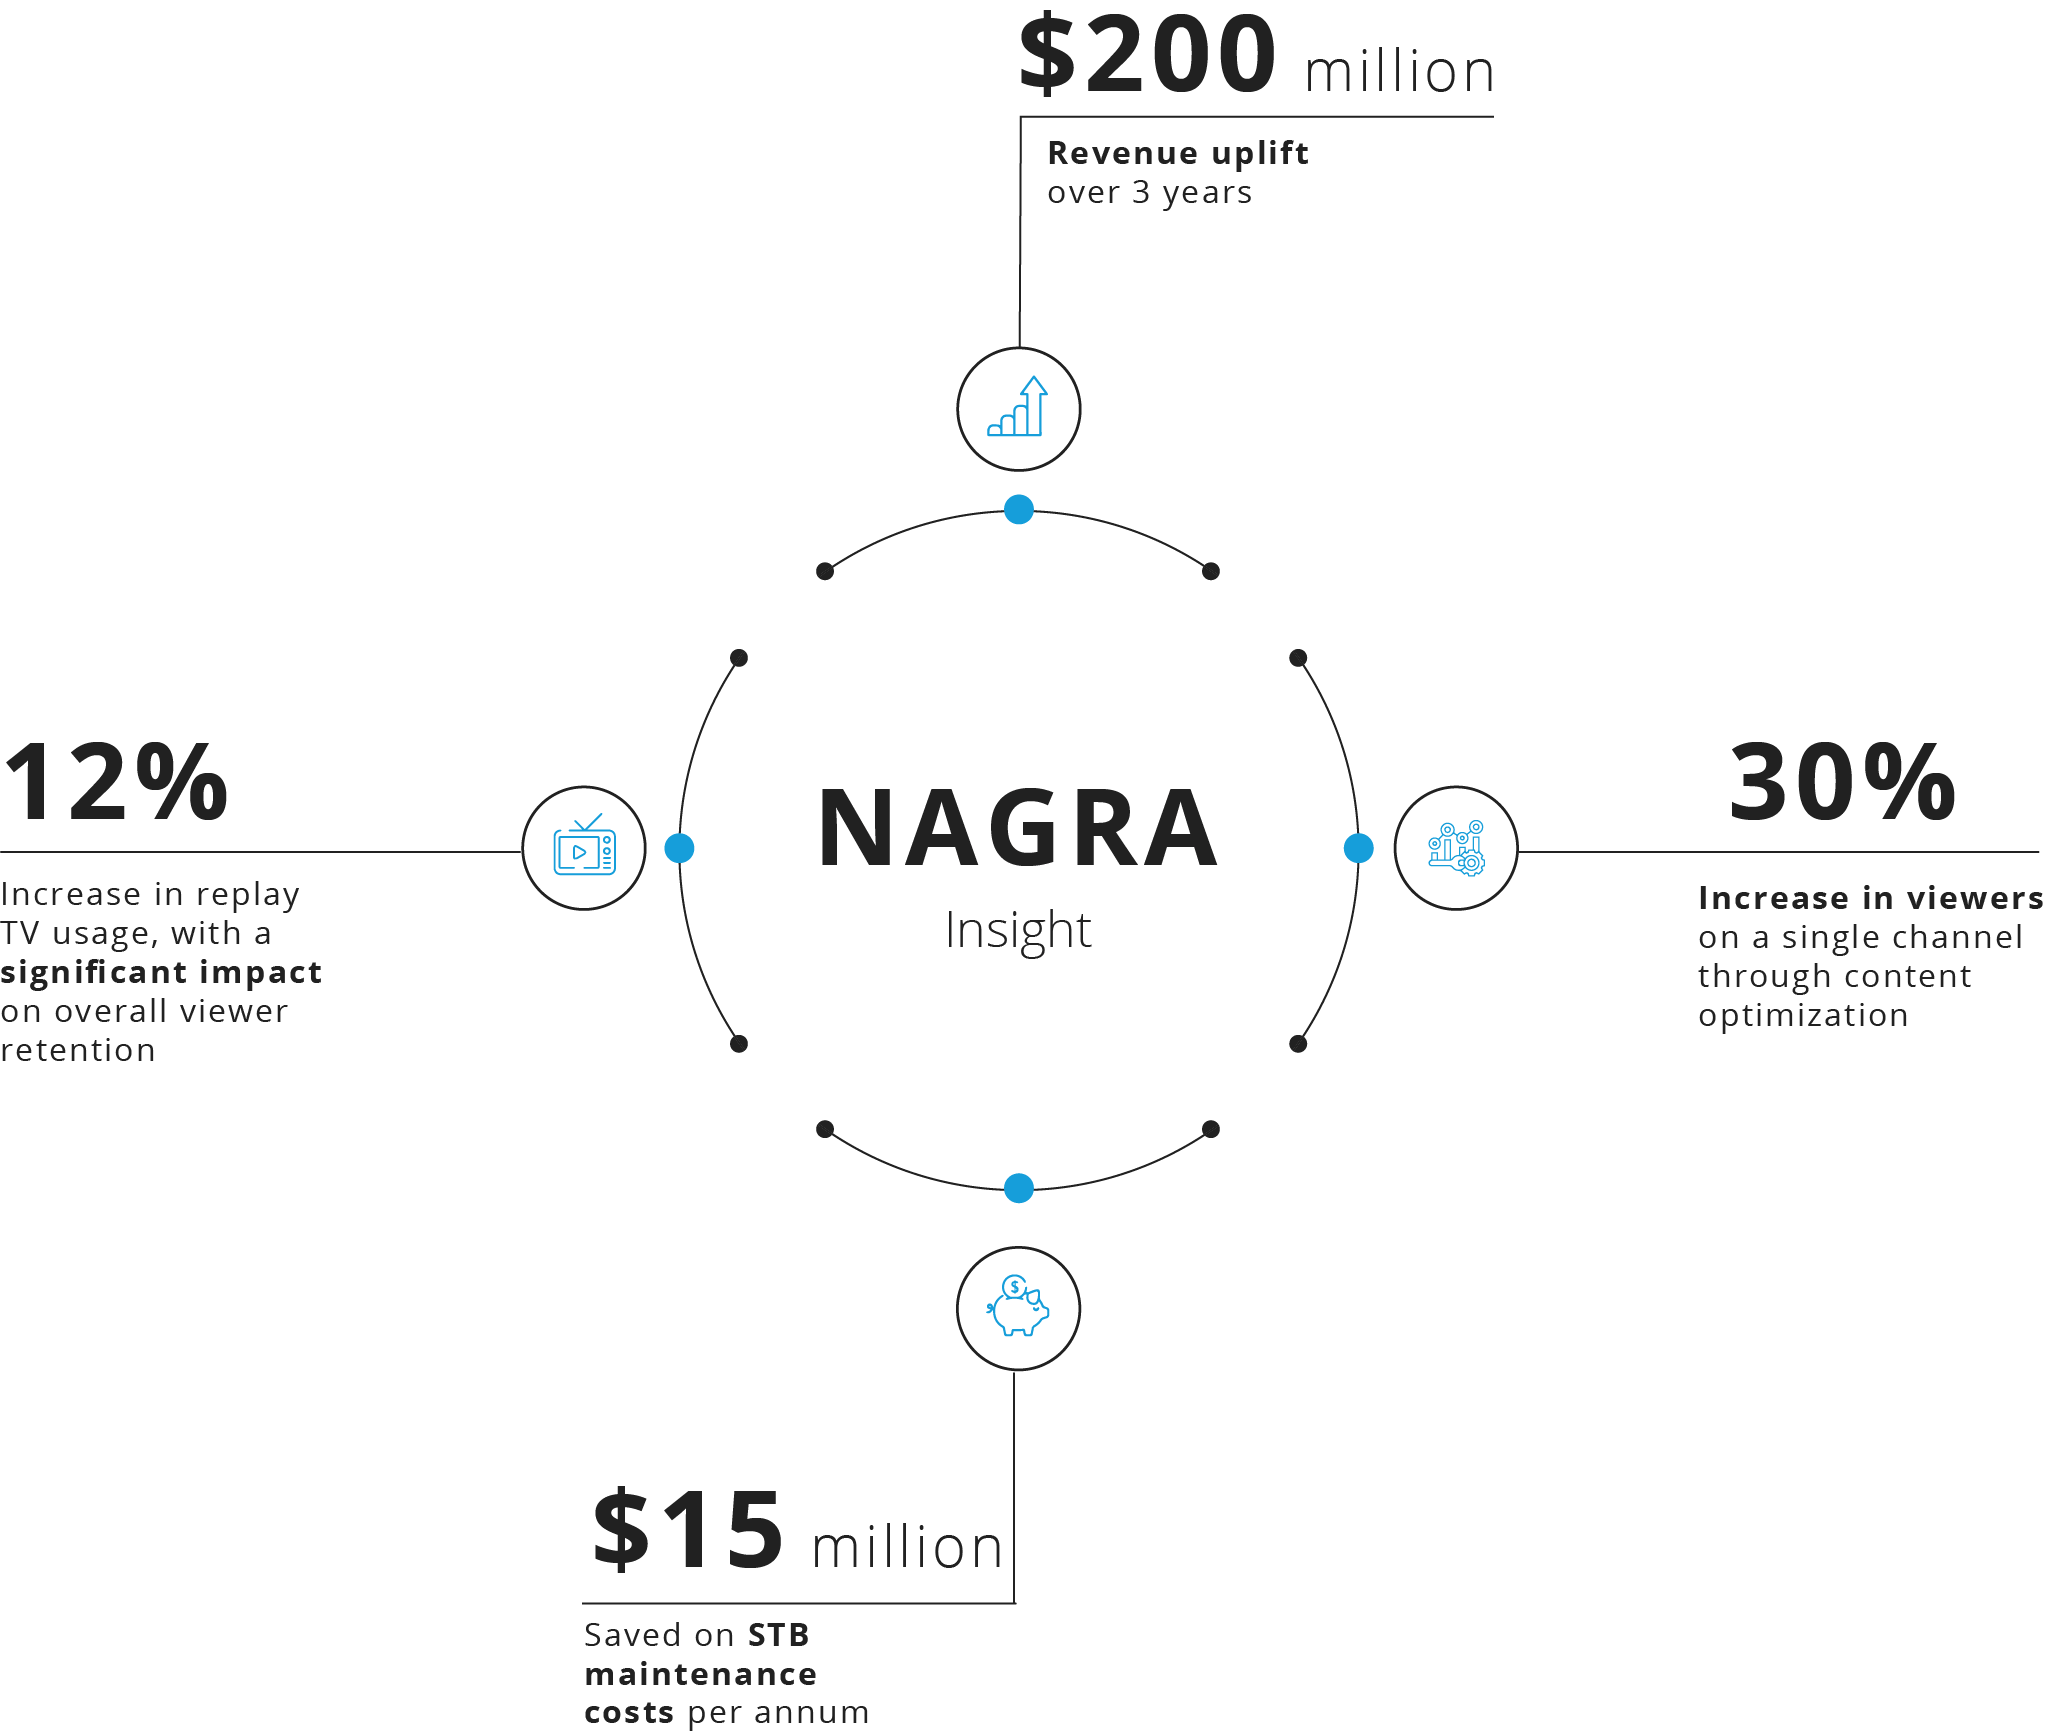 NAGRA Insights - Infographic